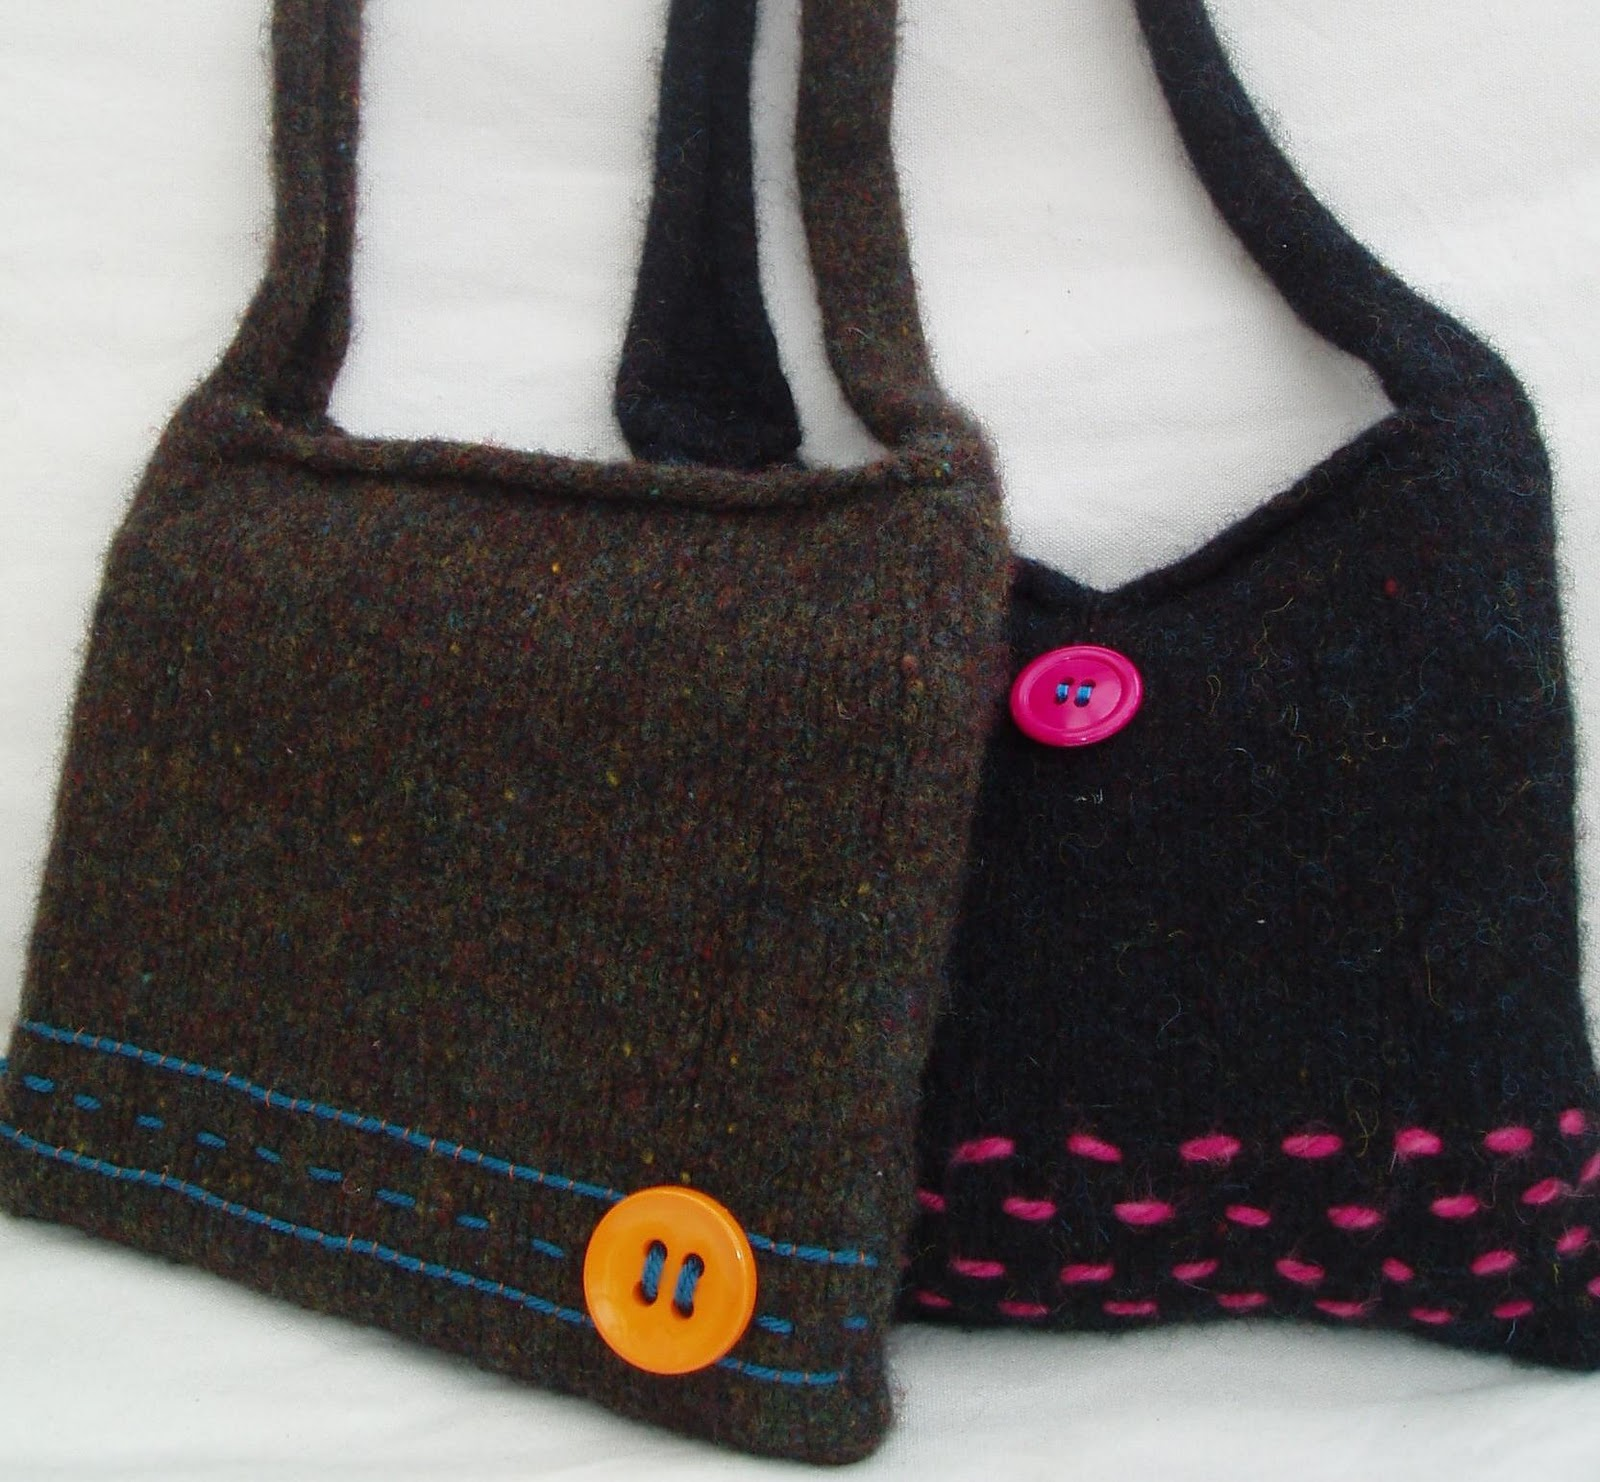 Knitted Bag Patterns For Beginners : ... bag. Including how to knit and felt instructions, pattern, needles